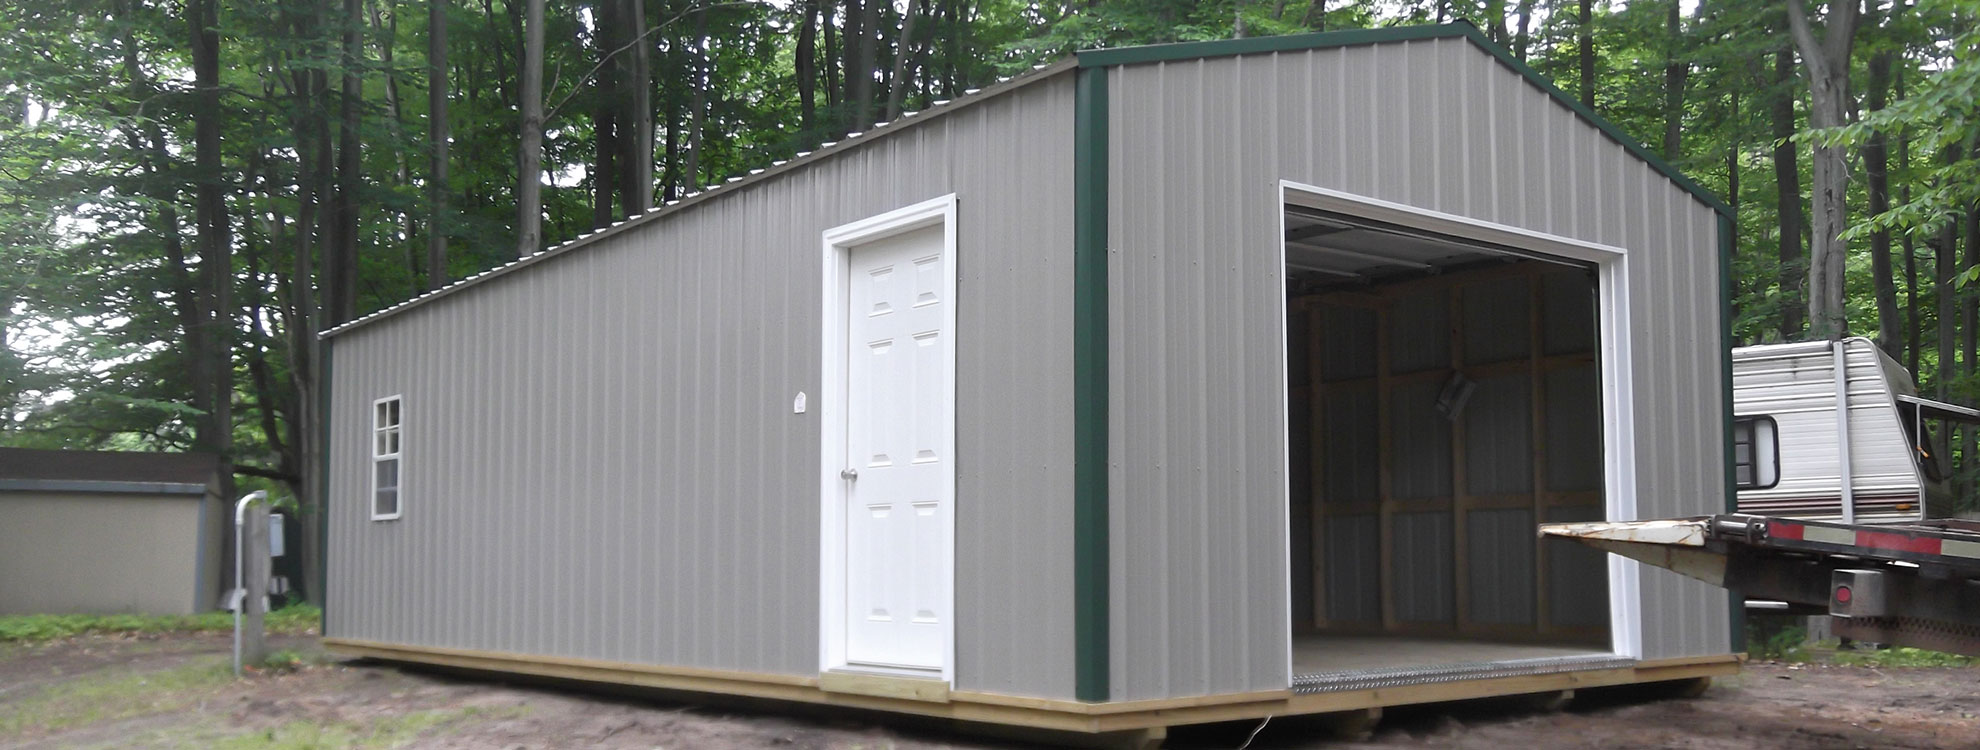 ez shed deluxe barn lofted sheds home cabin buildings portable cabins